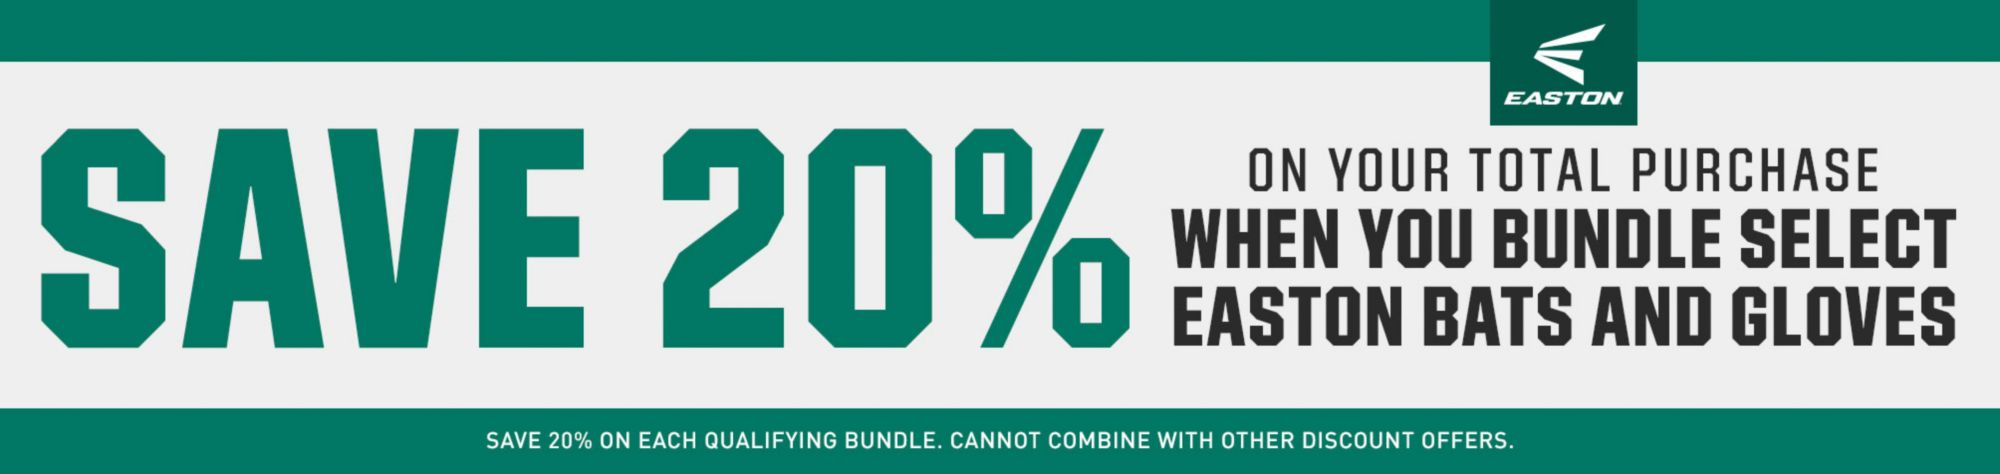 Save 20% On Your Total Purchase When You Bundle Select Easton Bats And Gloves